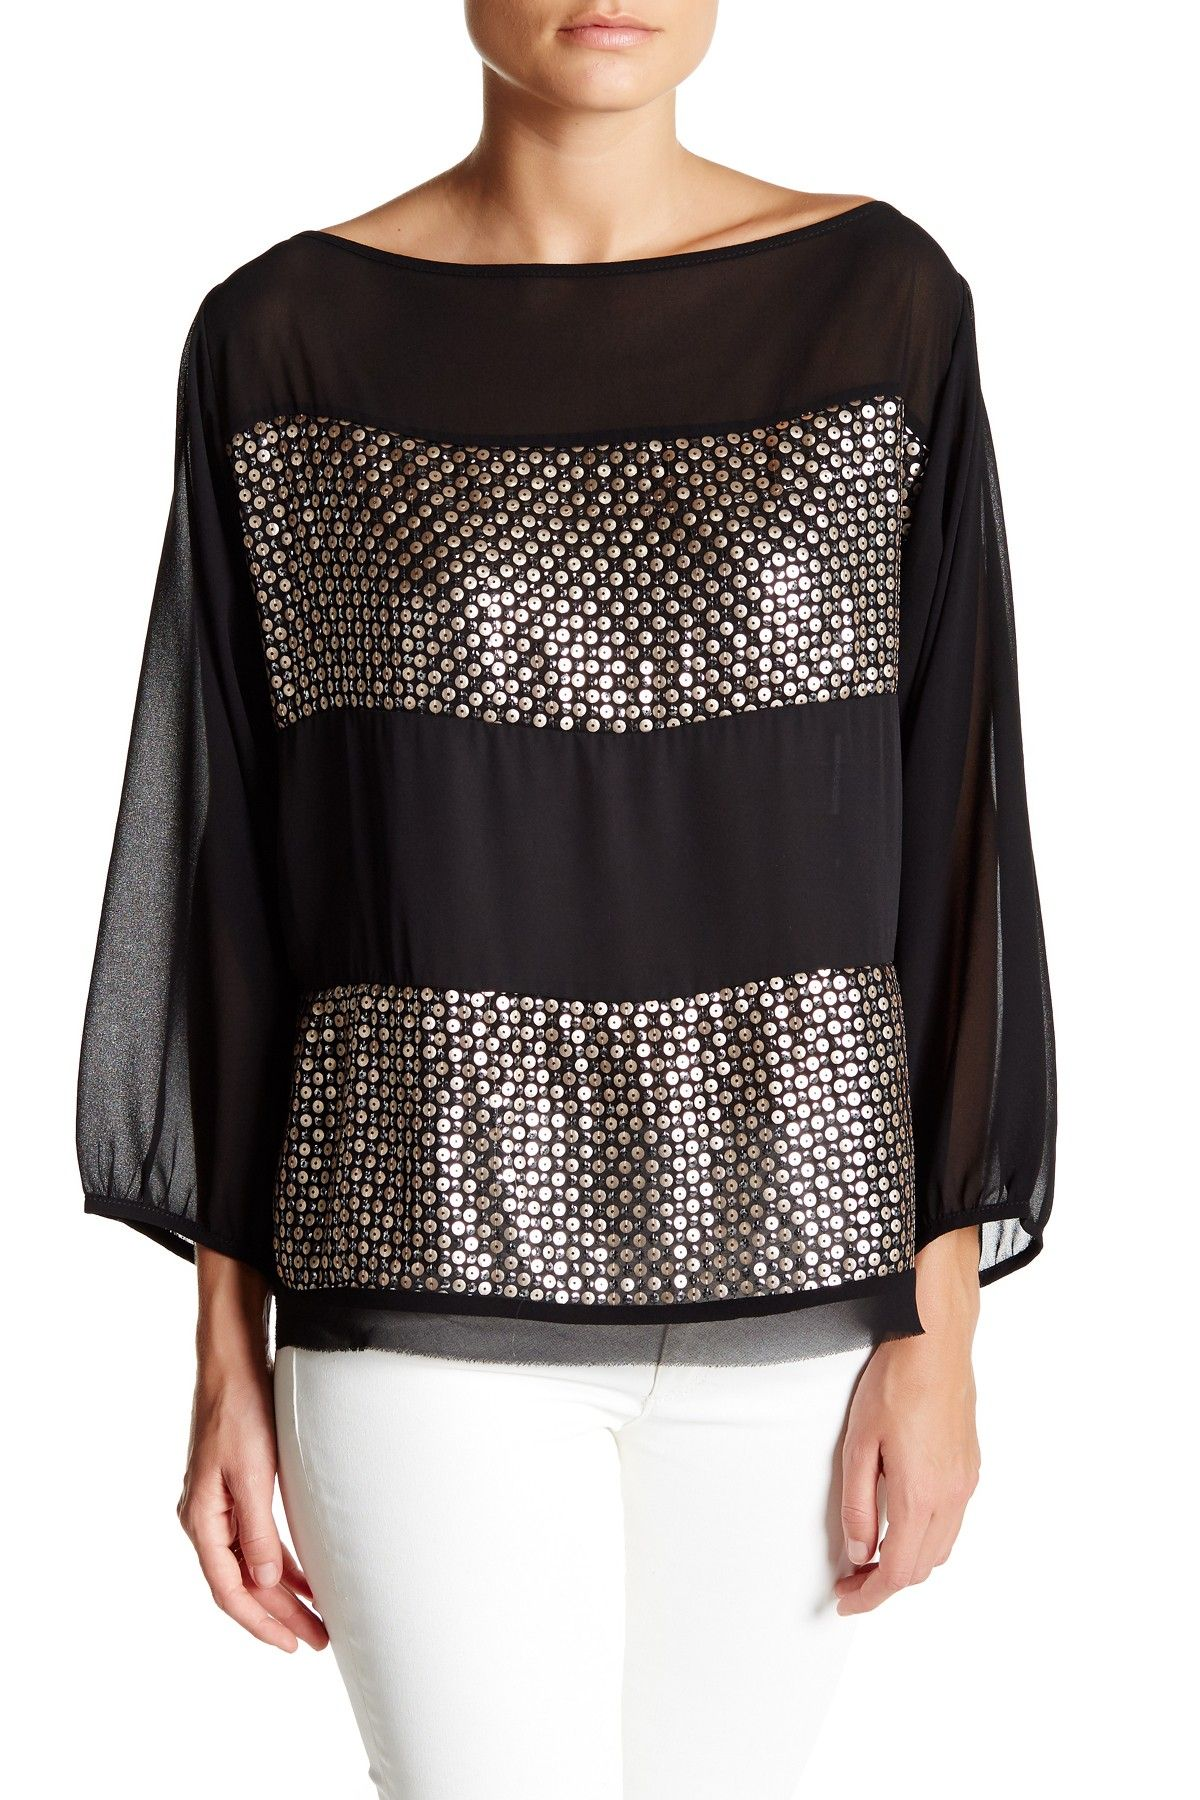 Gold and Black Sequin Blouse